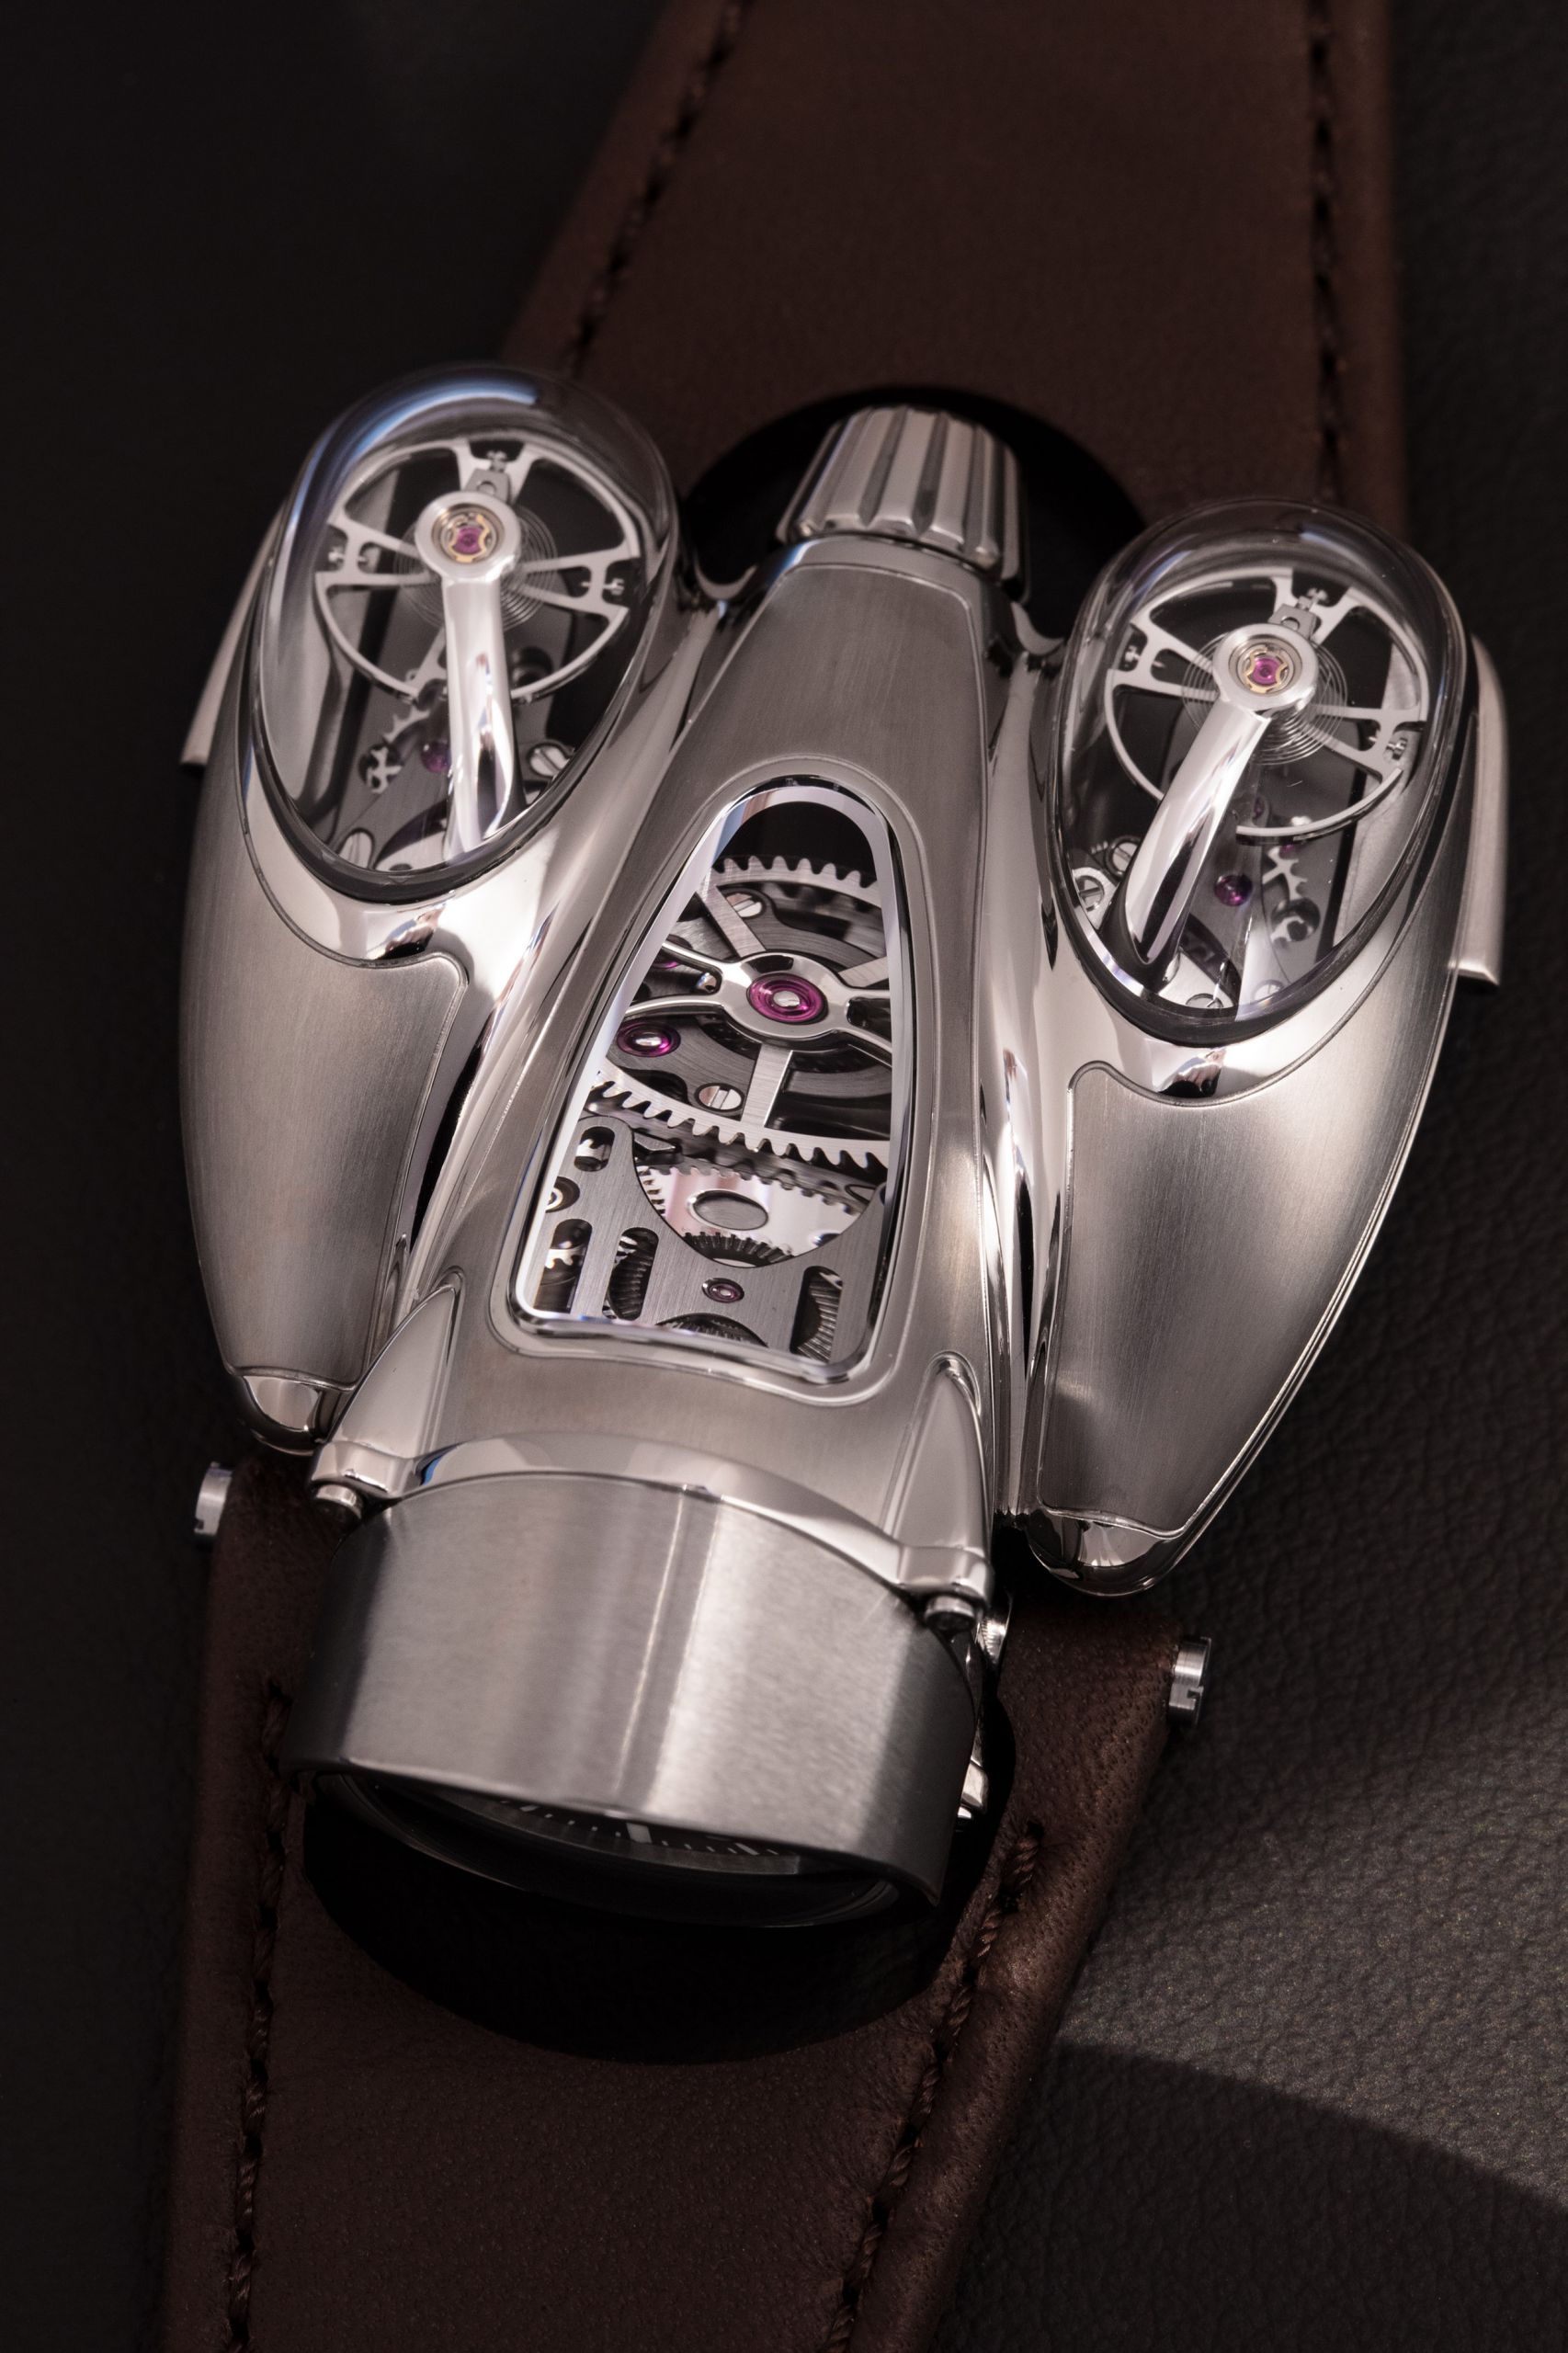 mb&f HM9 tom claeren monaco art in time